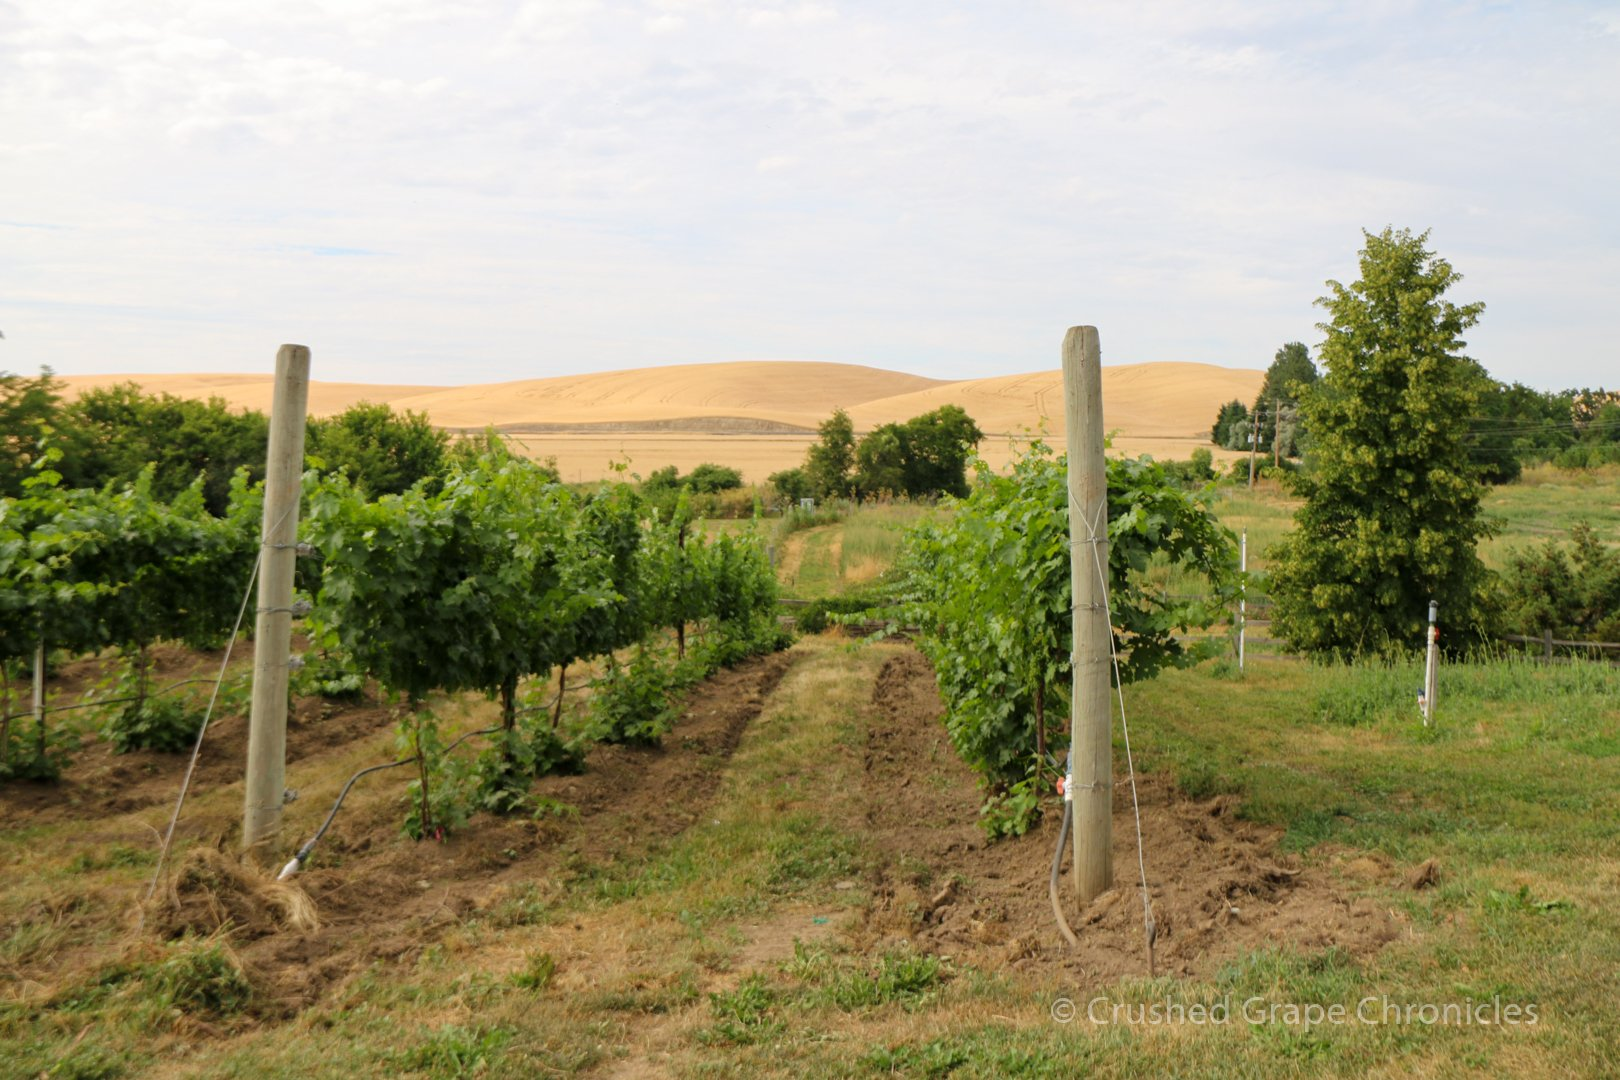 Vines running North to South in the Valley Grove Vineyard in the Walla Walla AVA